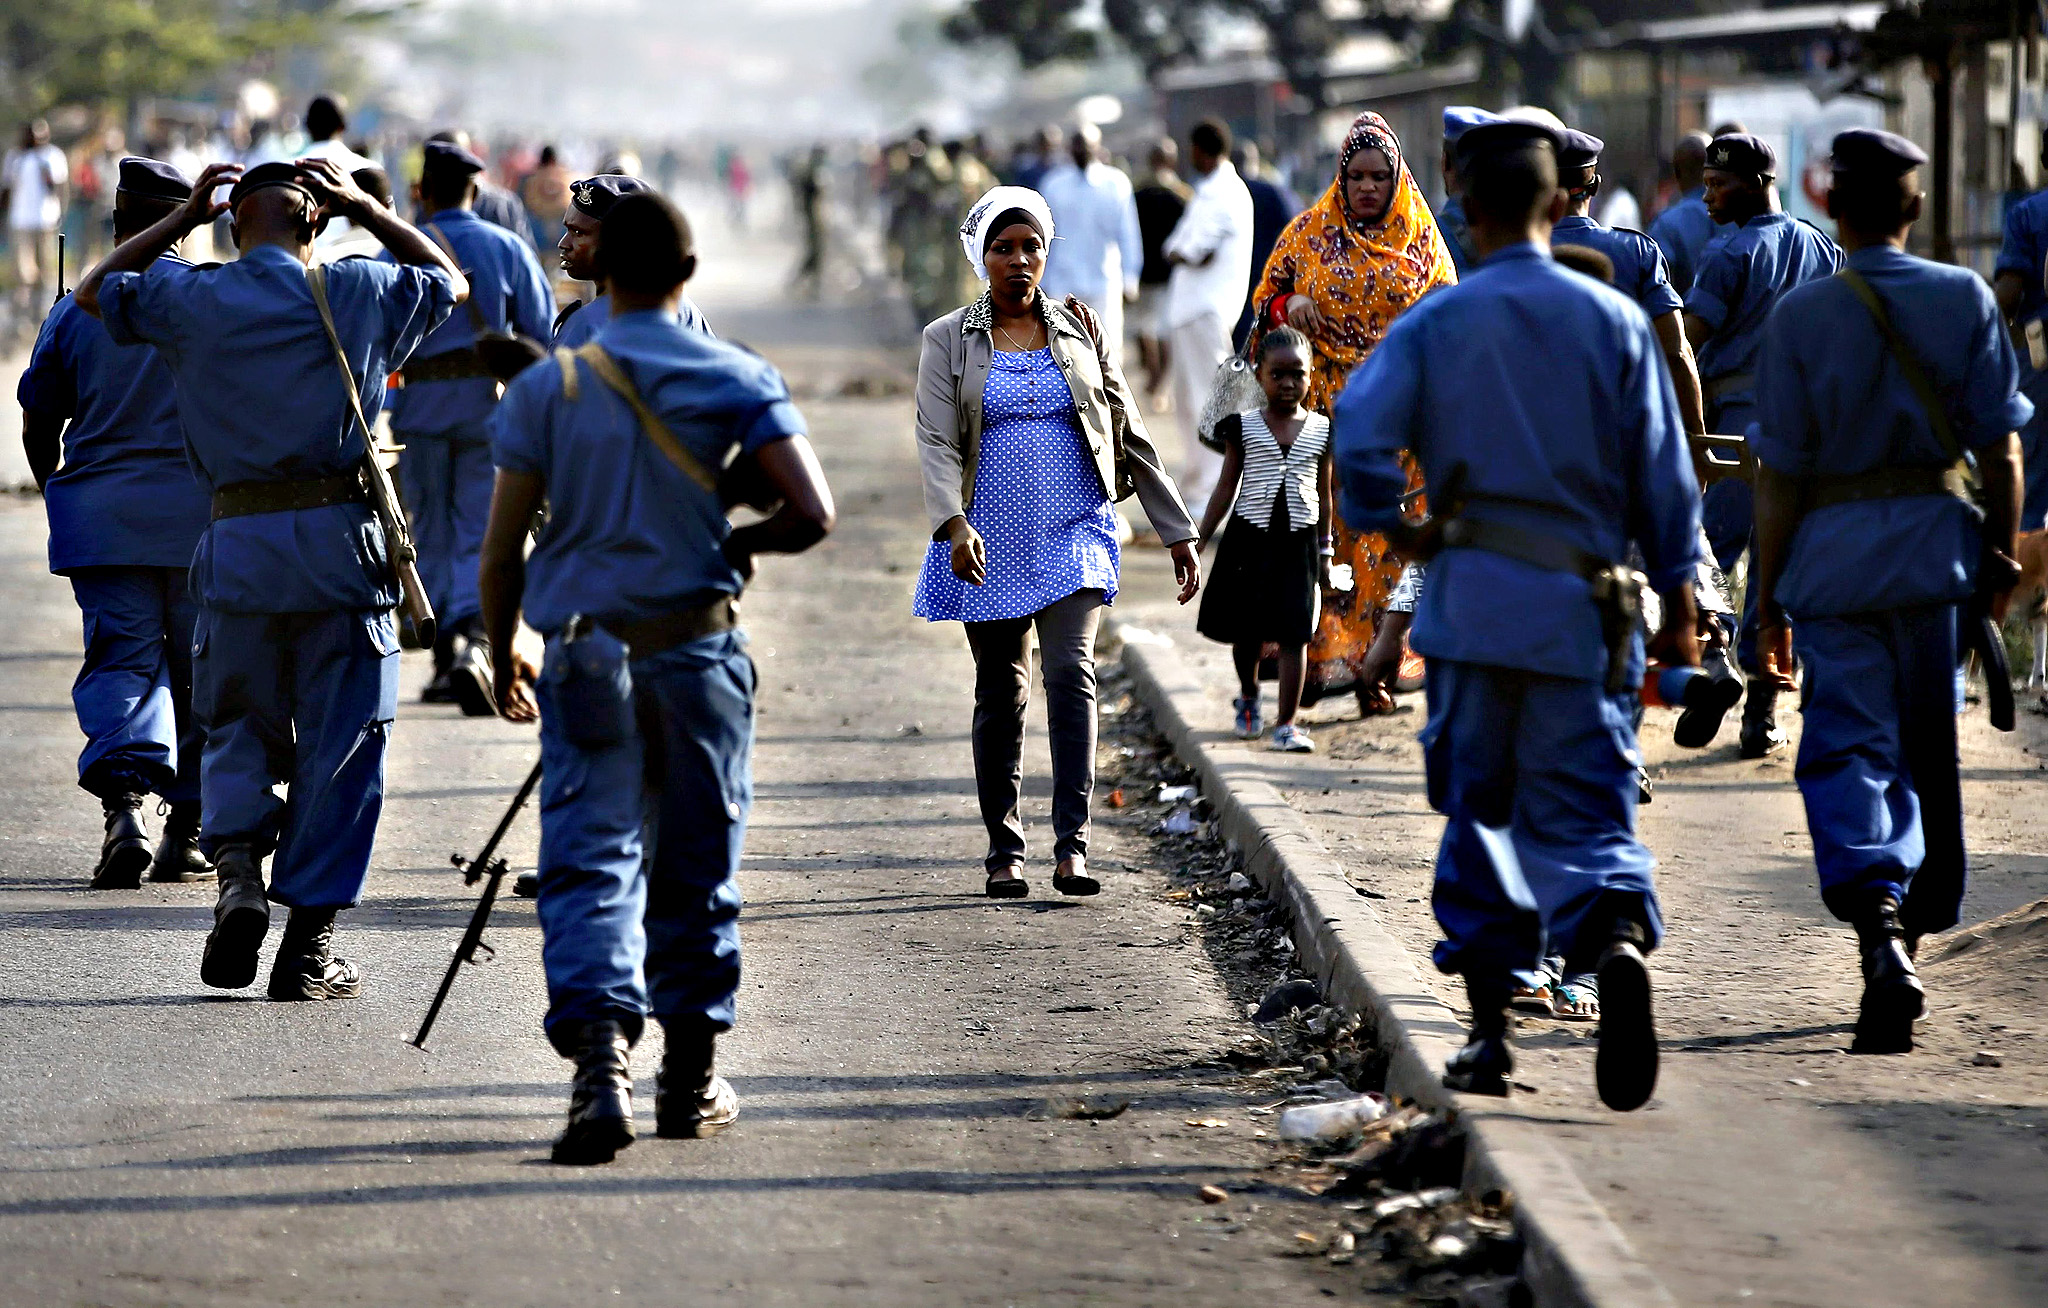 A woman passes by policemen during a protest against Burundi President Pierre Nkurunziza and his bid for a third term in Bujumbura, Burundi, June 2, 2015